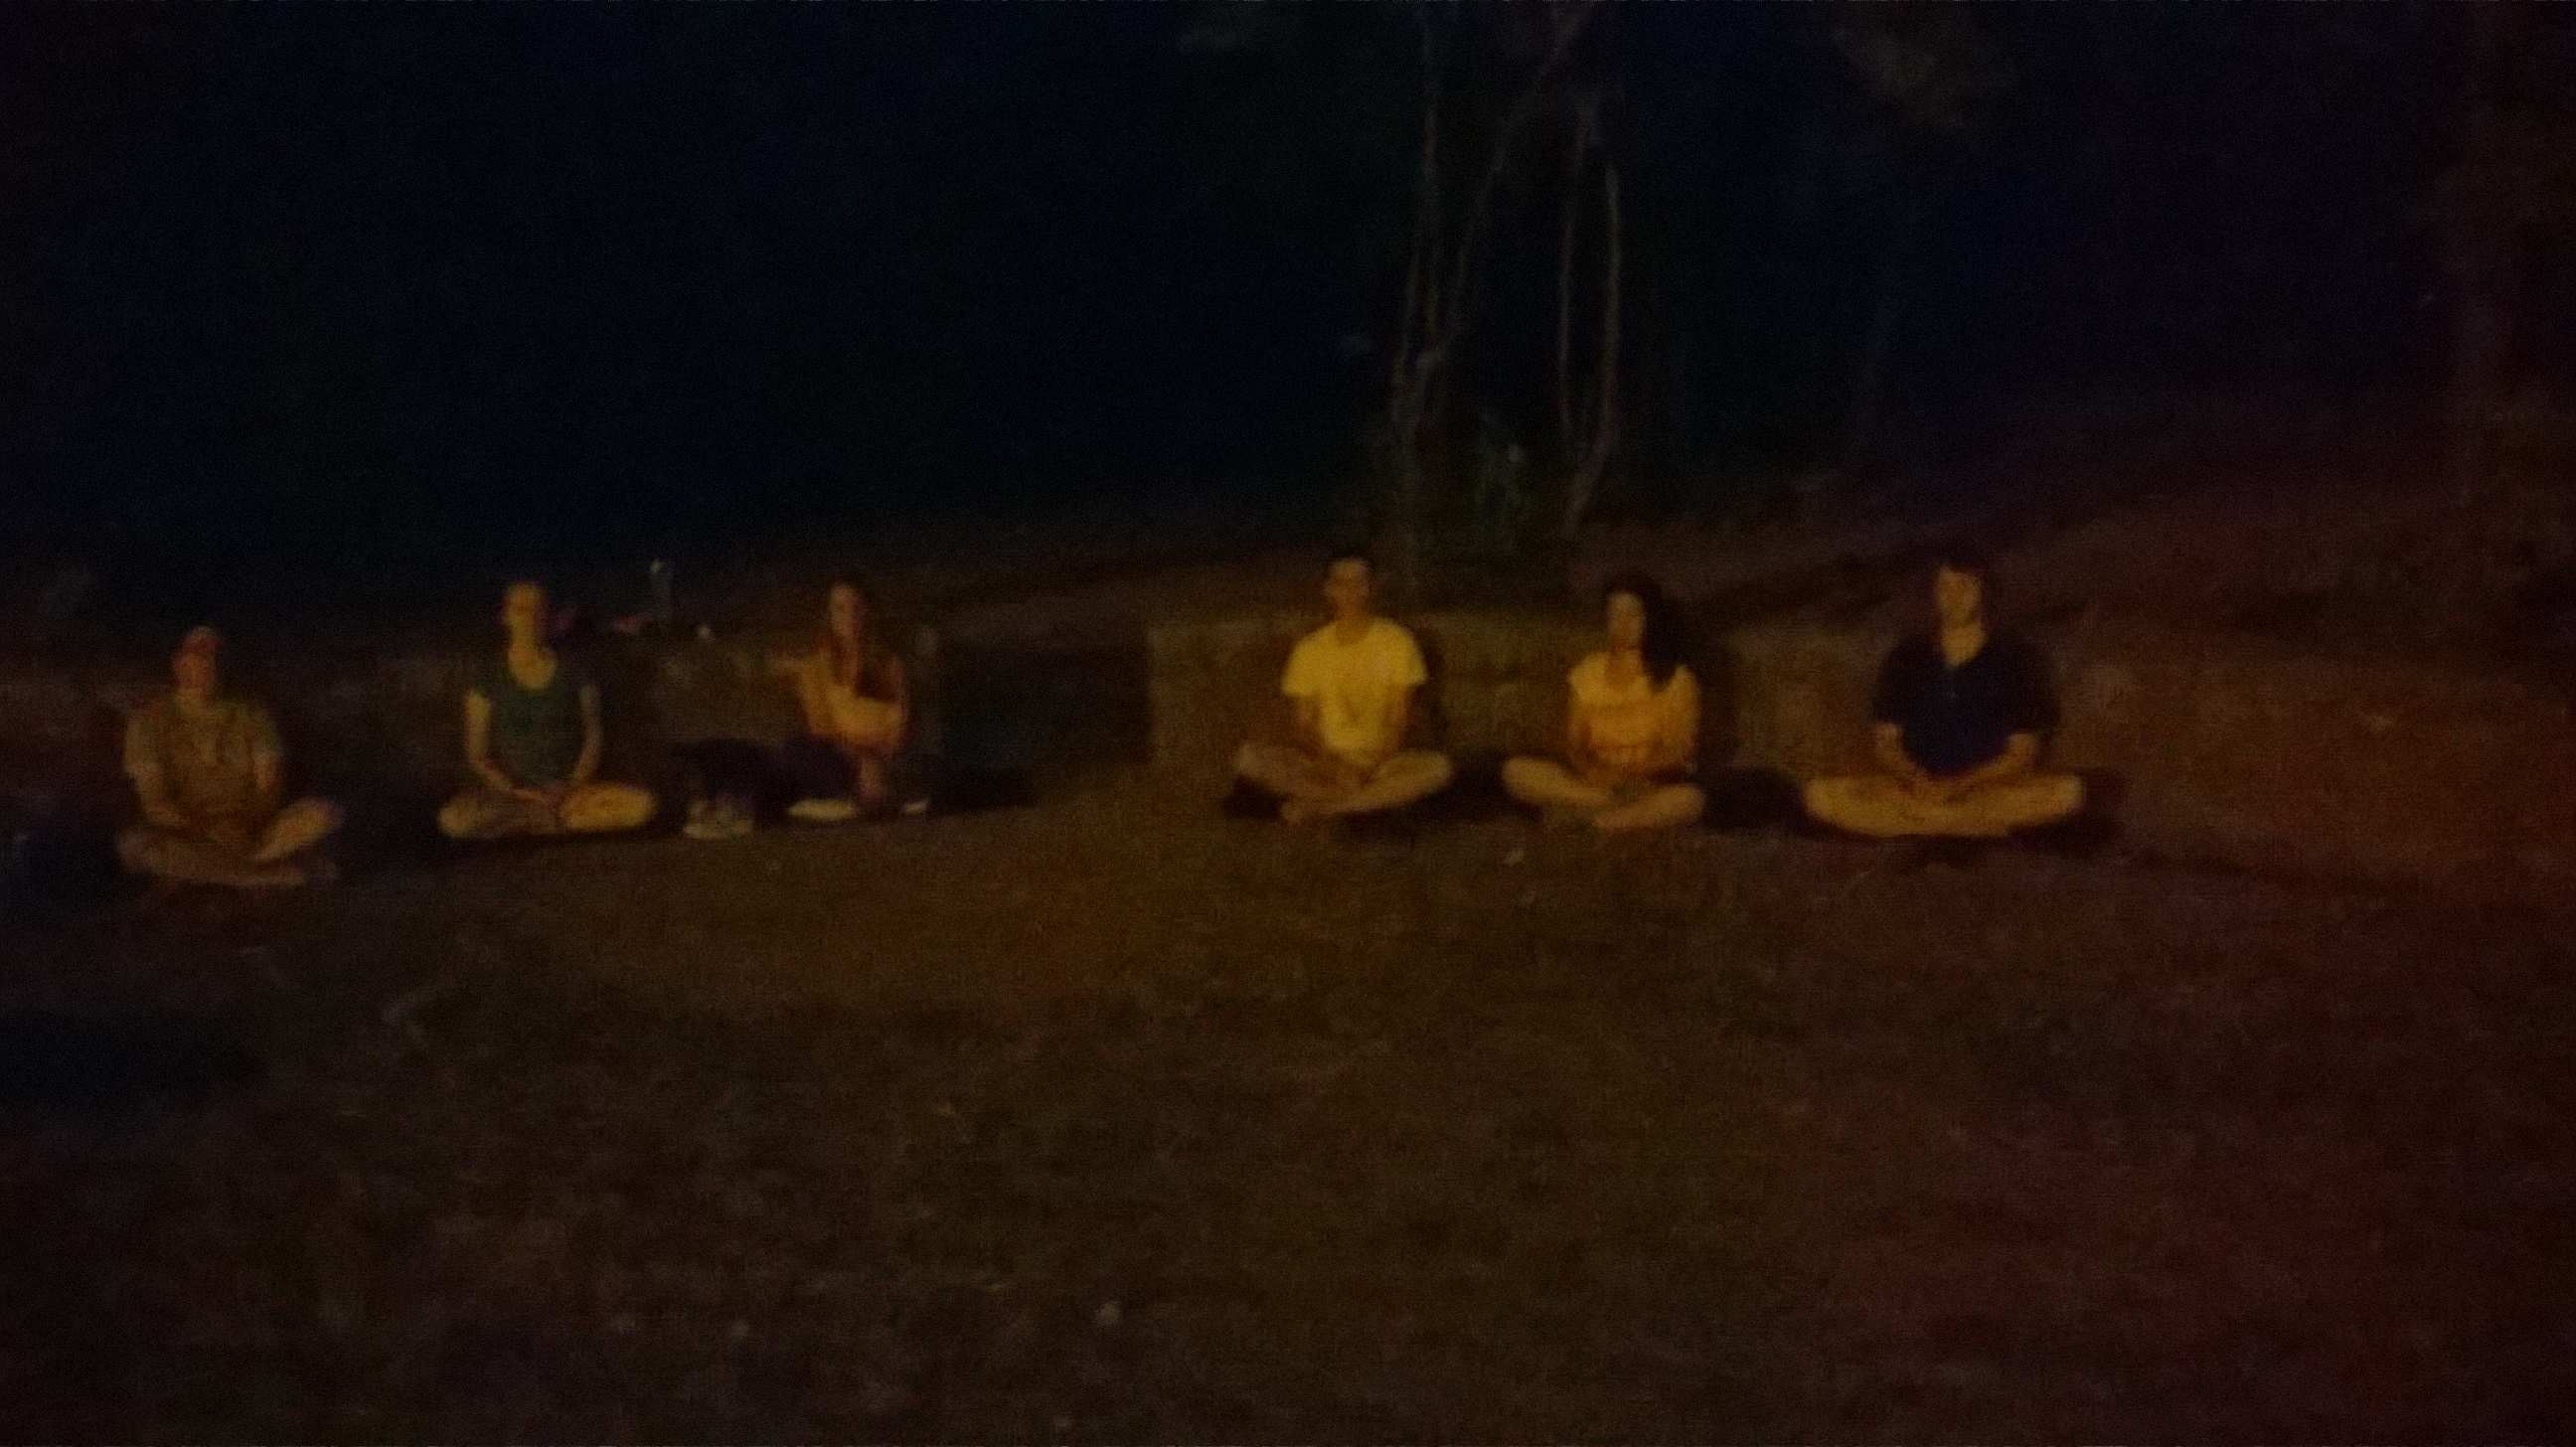 Meditation session at dusk